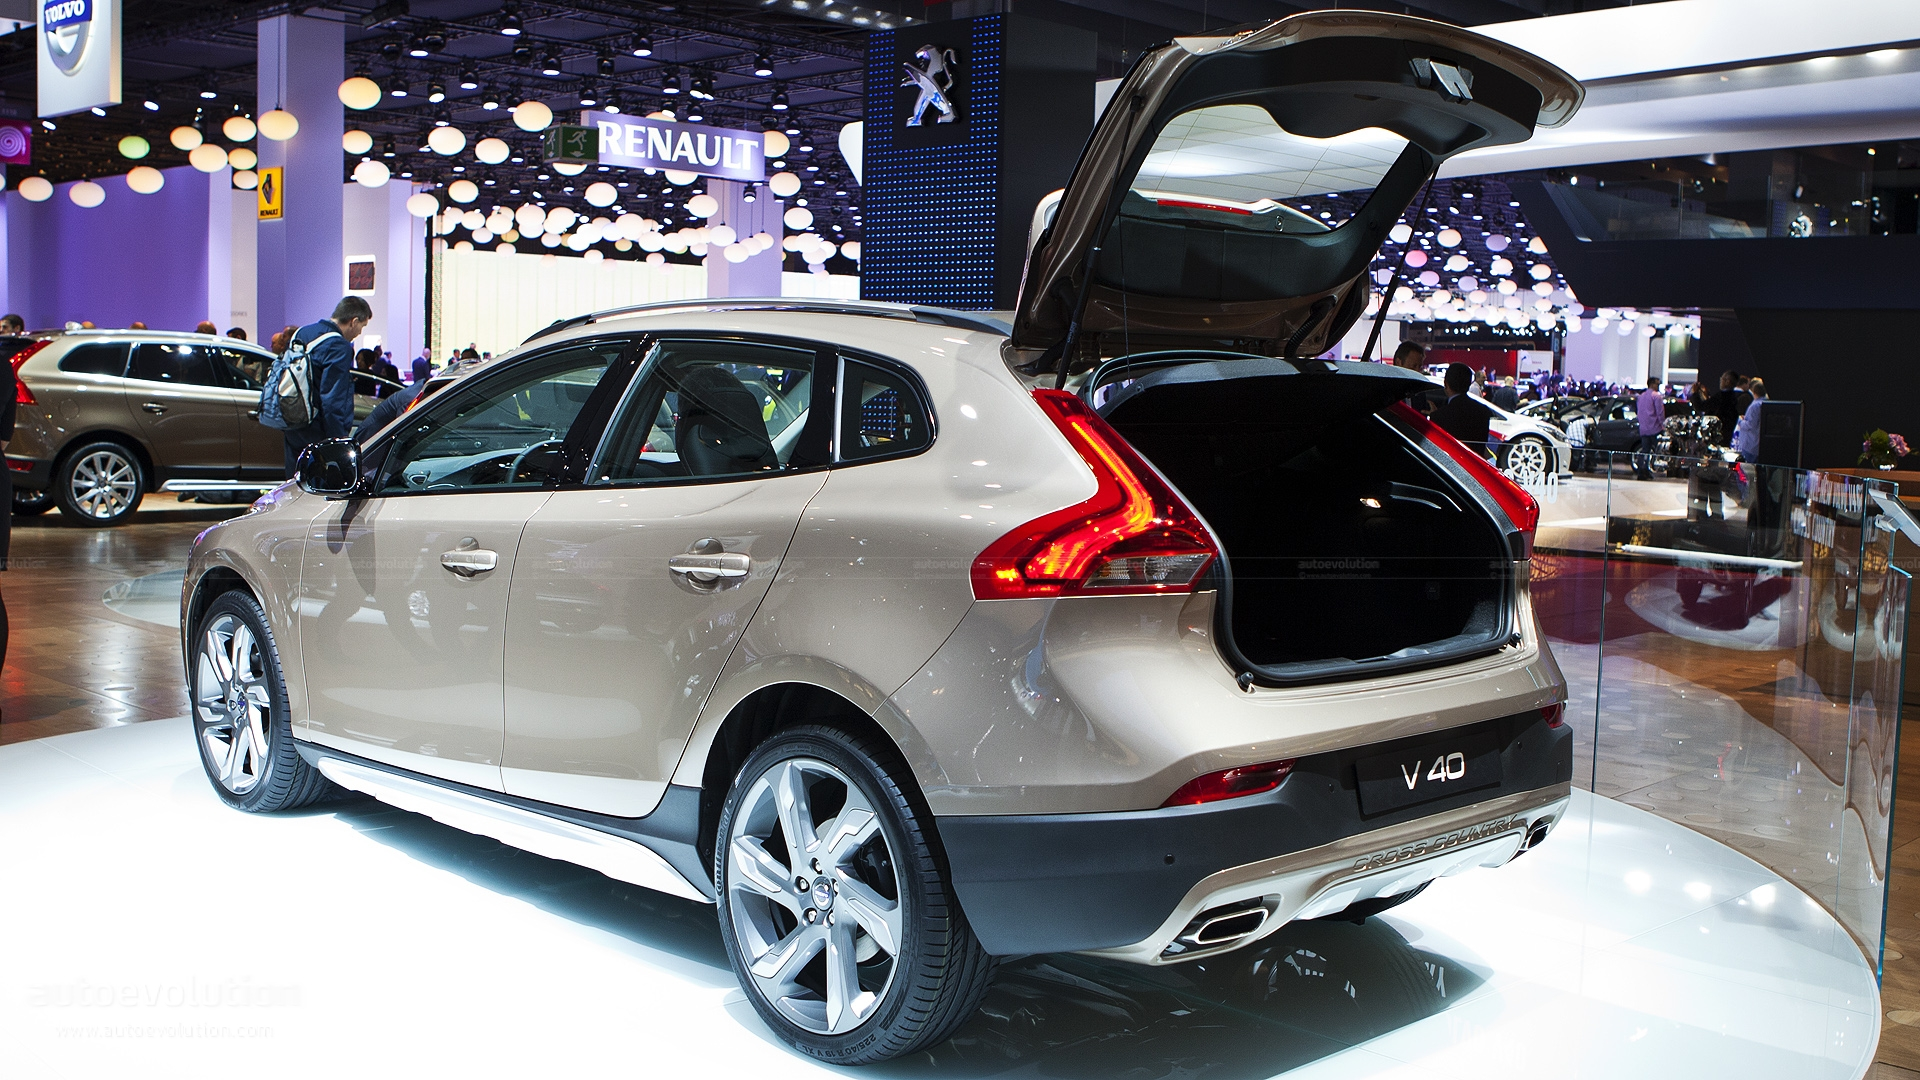 volvo v40 cross country photos 3 on better parts ltd. Black Bedroom Furniture Sets. Home Design Ideas